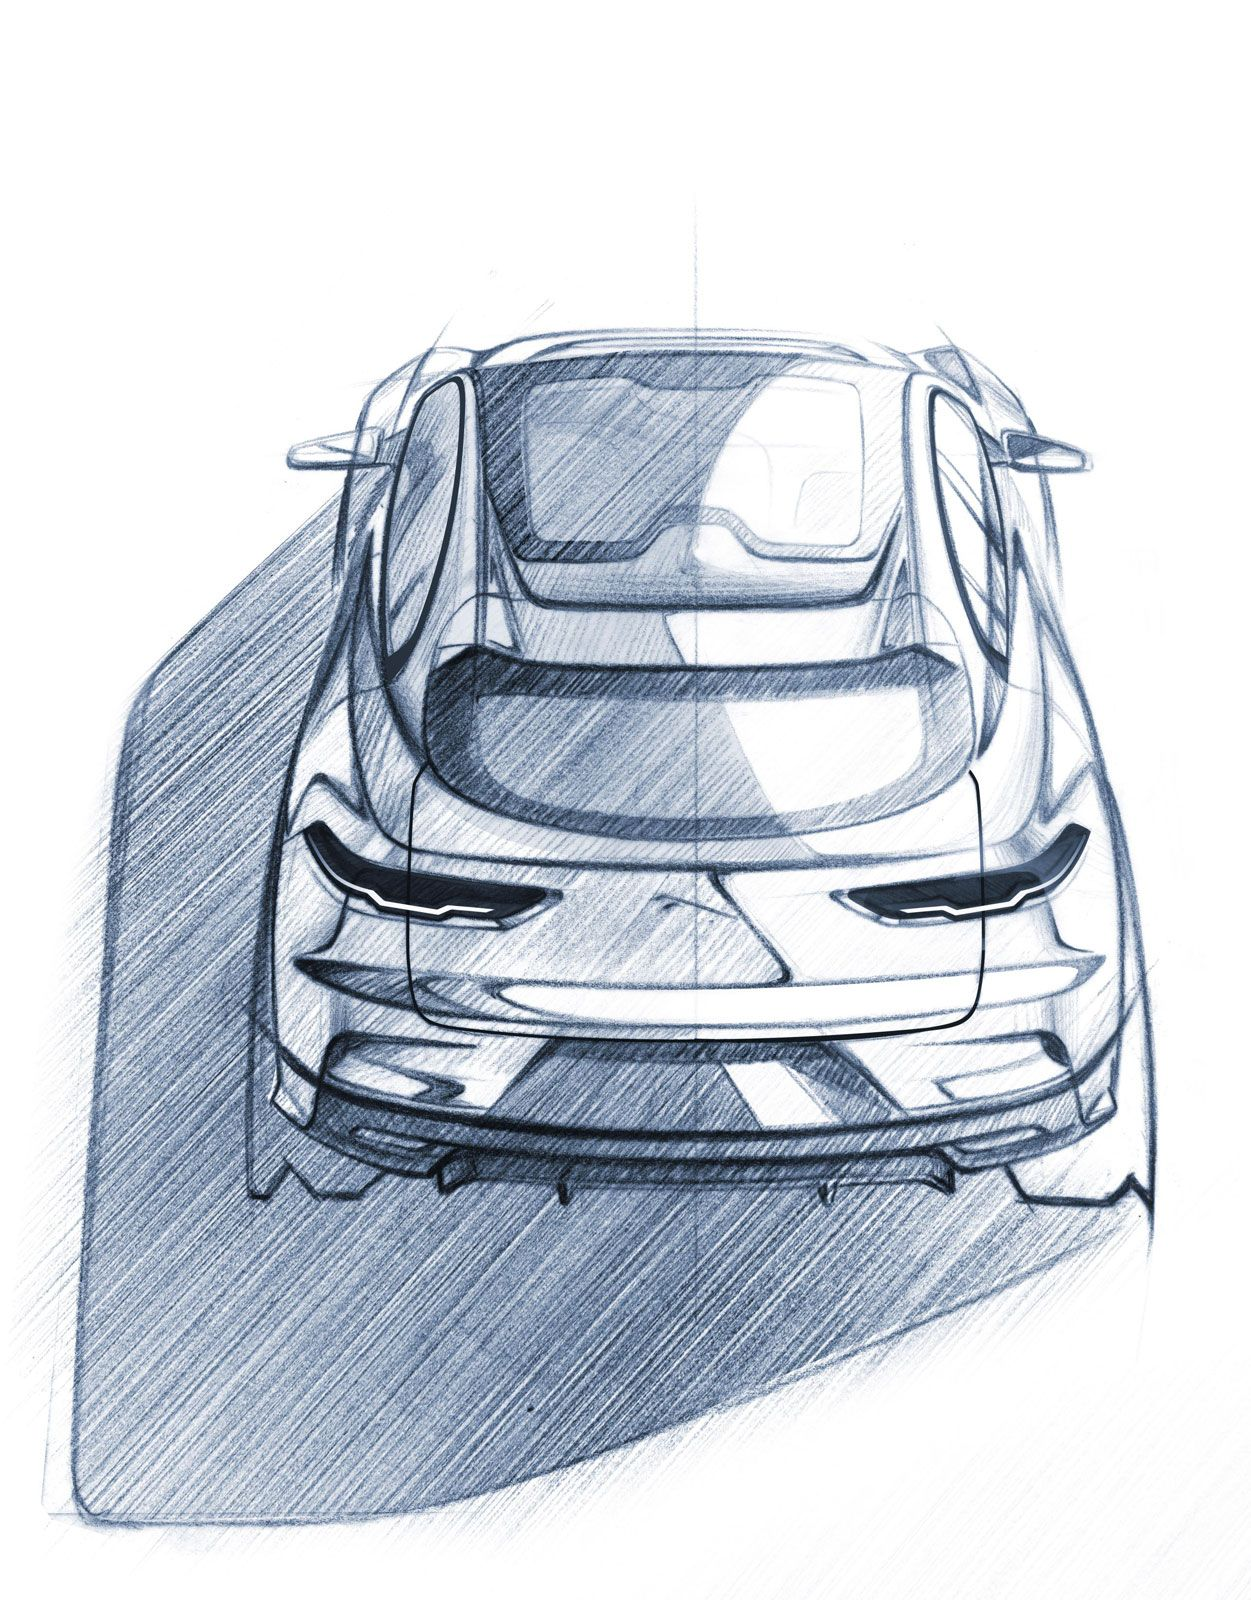 Pin On Sketching Pinterest Jaguar Cars And Automotive Design